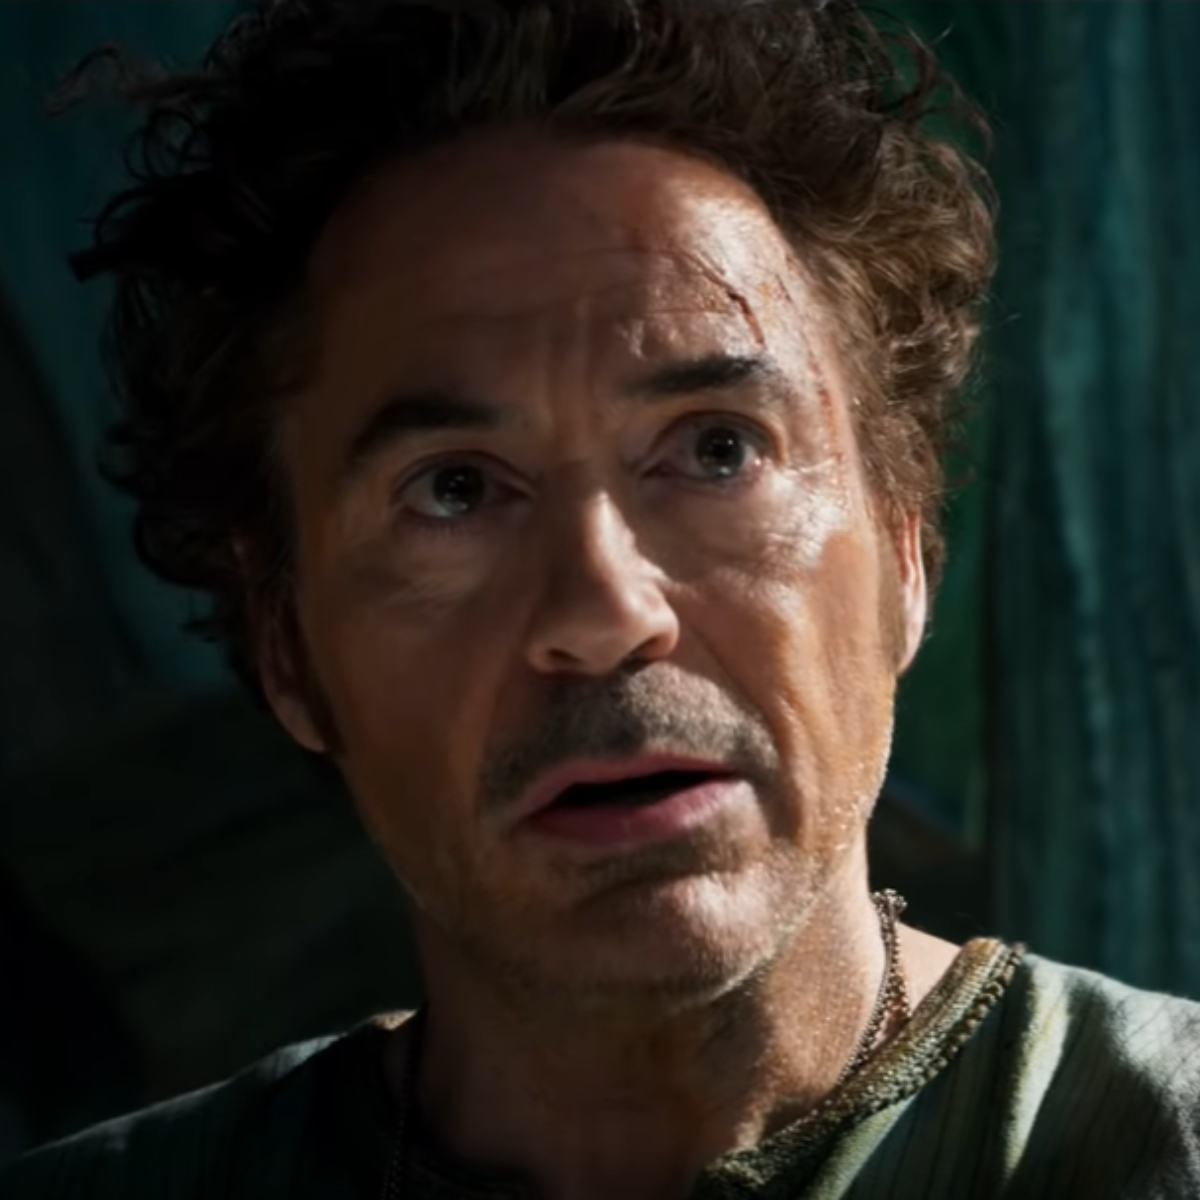 Dolittle: From a terrific voice cast to dragons, 5 things to look forward to in Robert Downey Jr's film